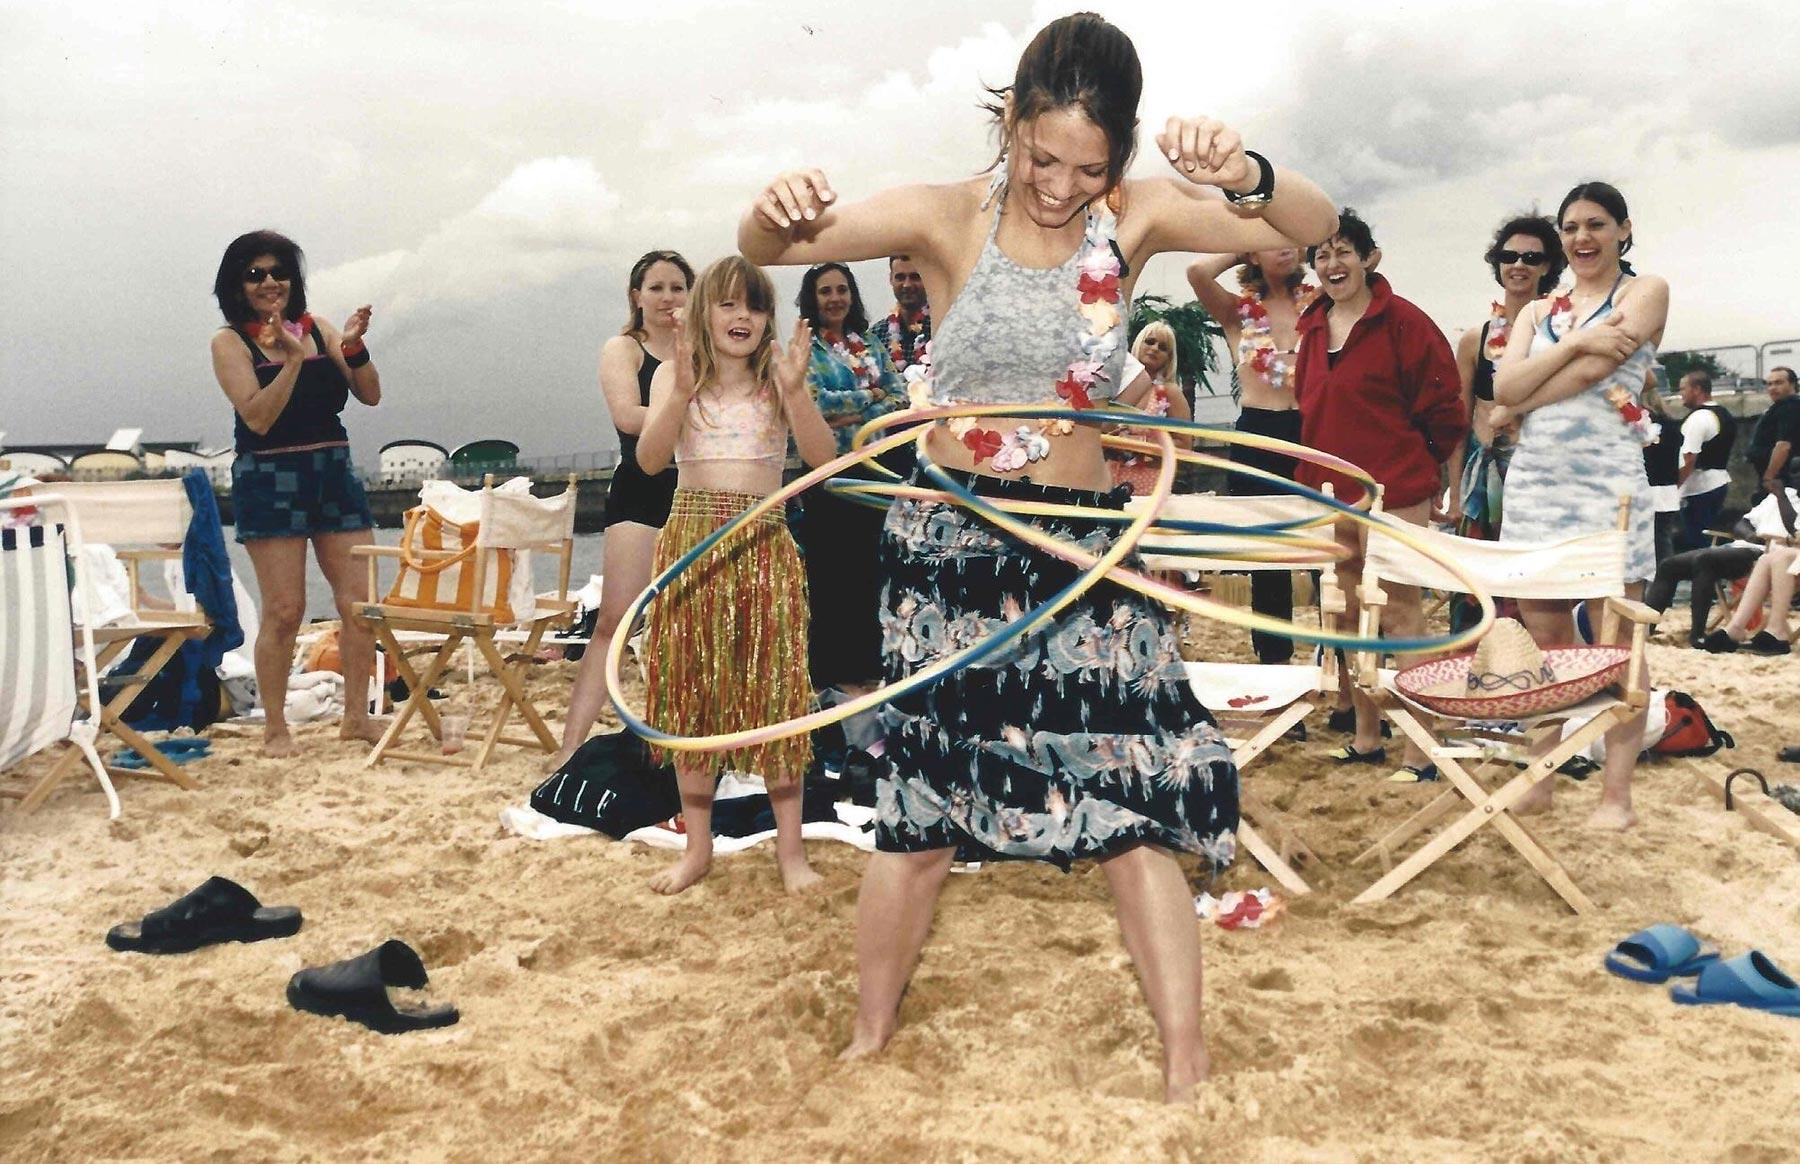 An old photo of young people hula-hooping on the Royal Docks beach